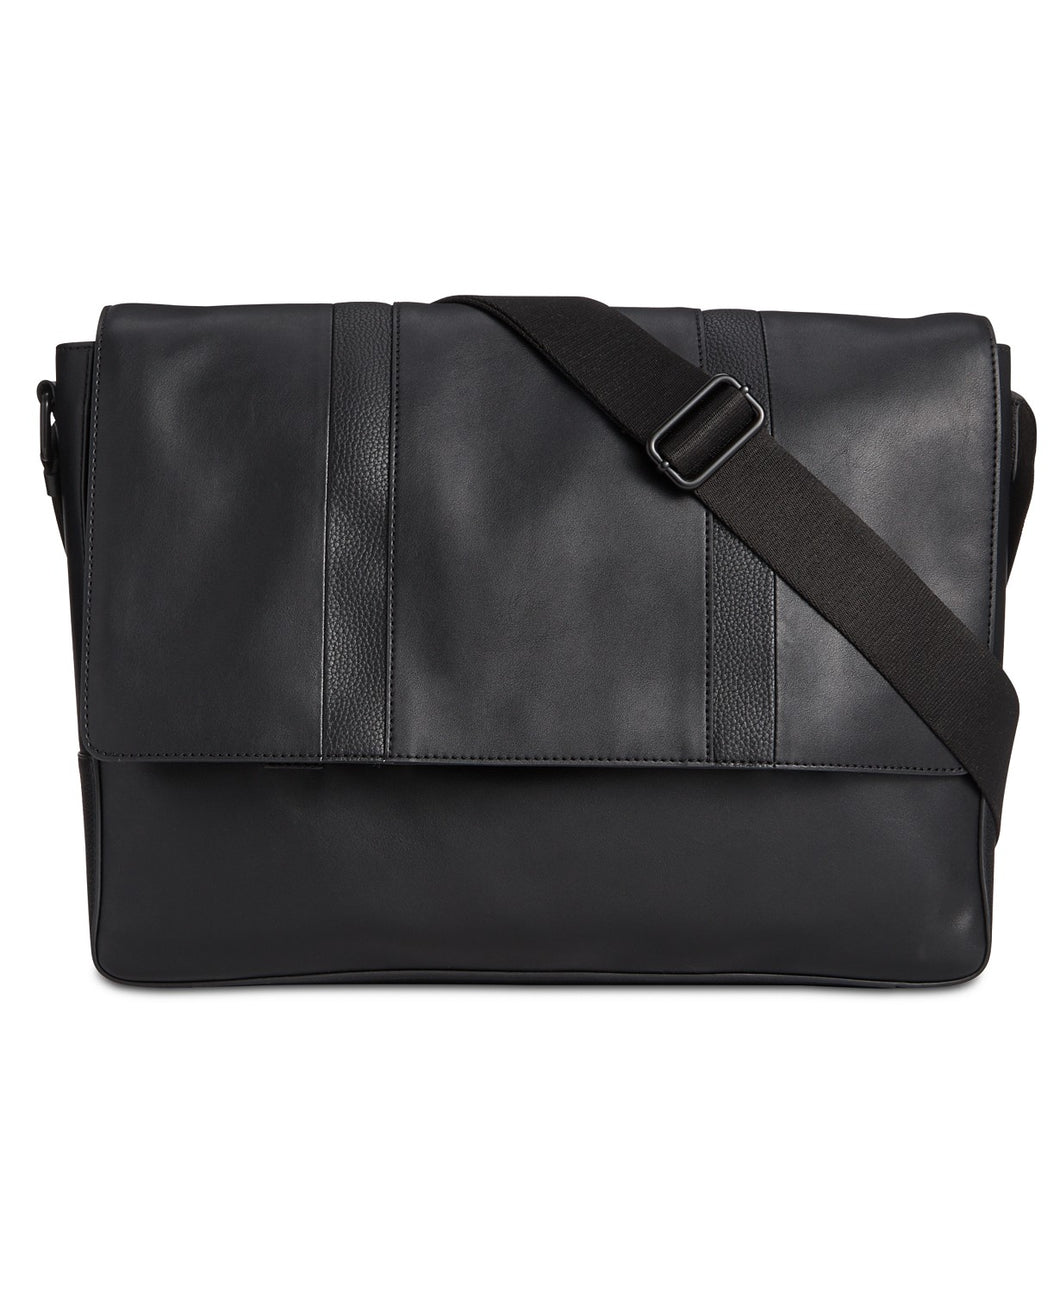 Calvin Klein Men's Faux-Leather Messenger Bag - Black